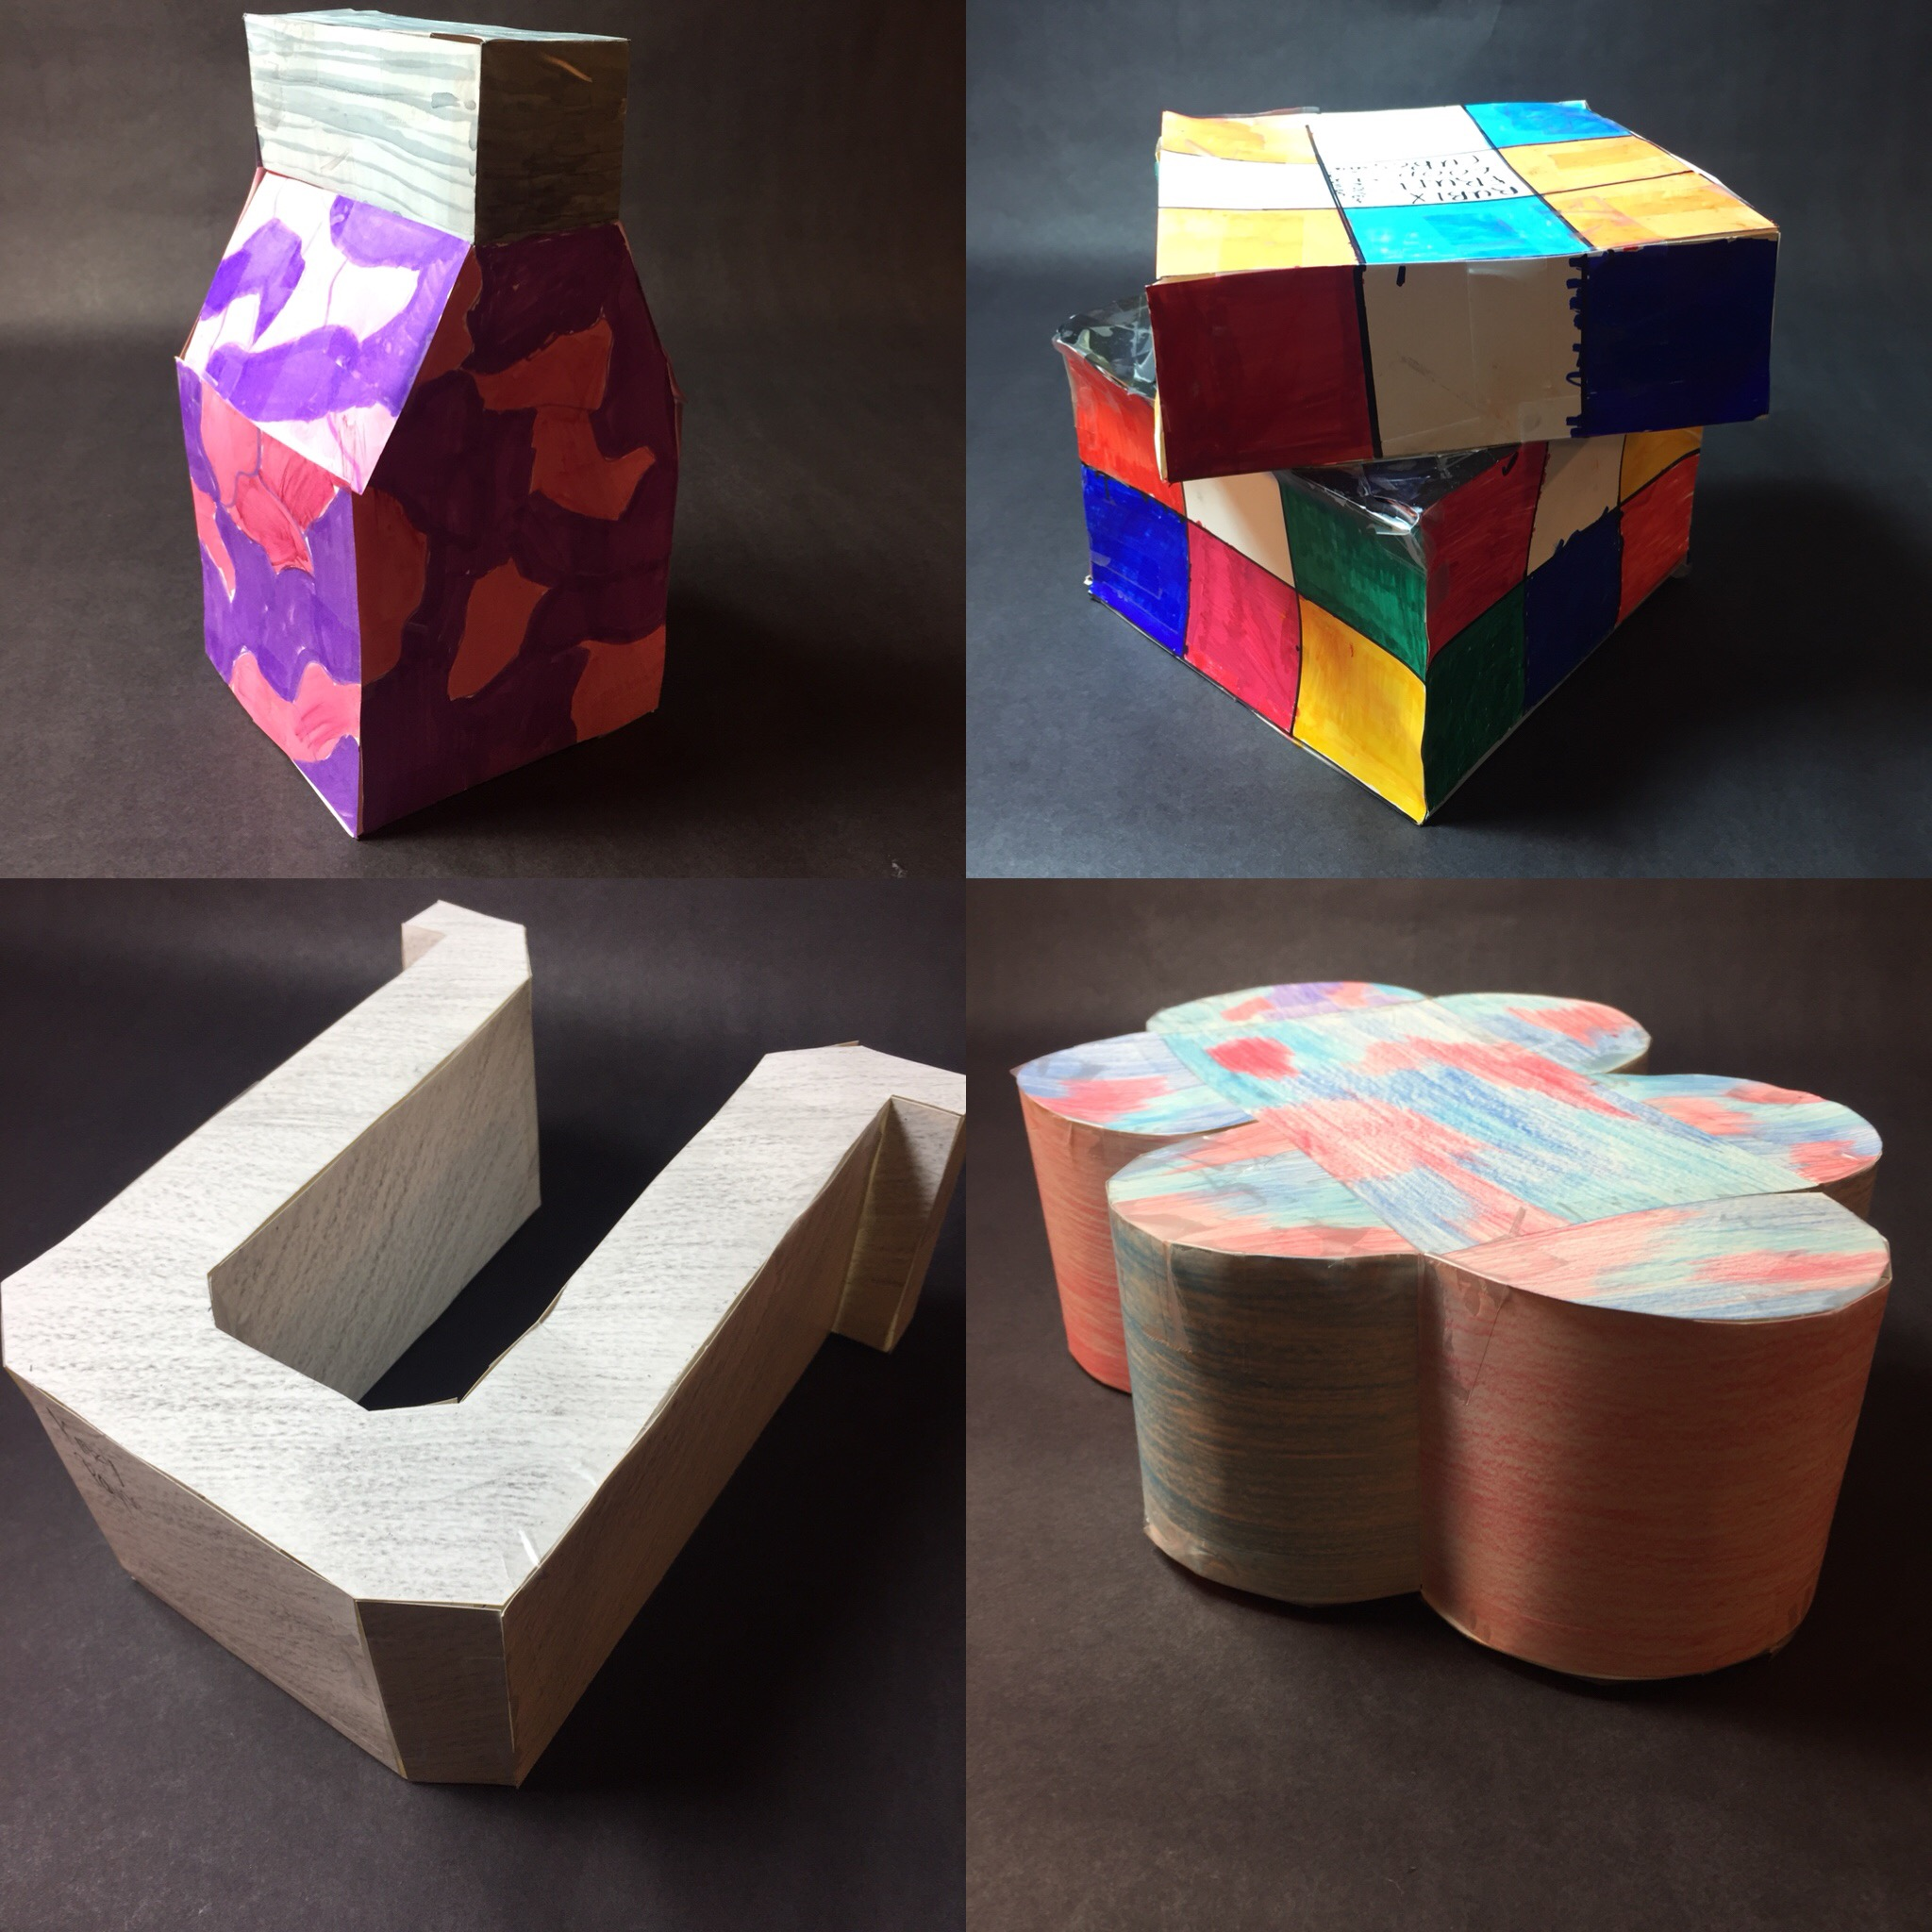 Cereal Box Project - This hands on project has been a staple in my classroom for over a decade. Its a really nice way to help kids see the connection between math concepts and actual three dimensional figures.